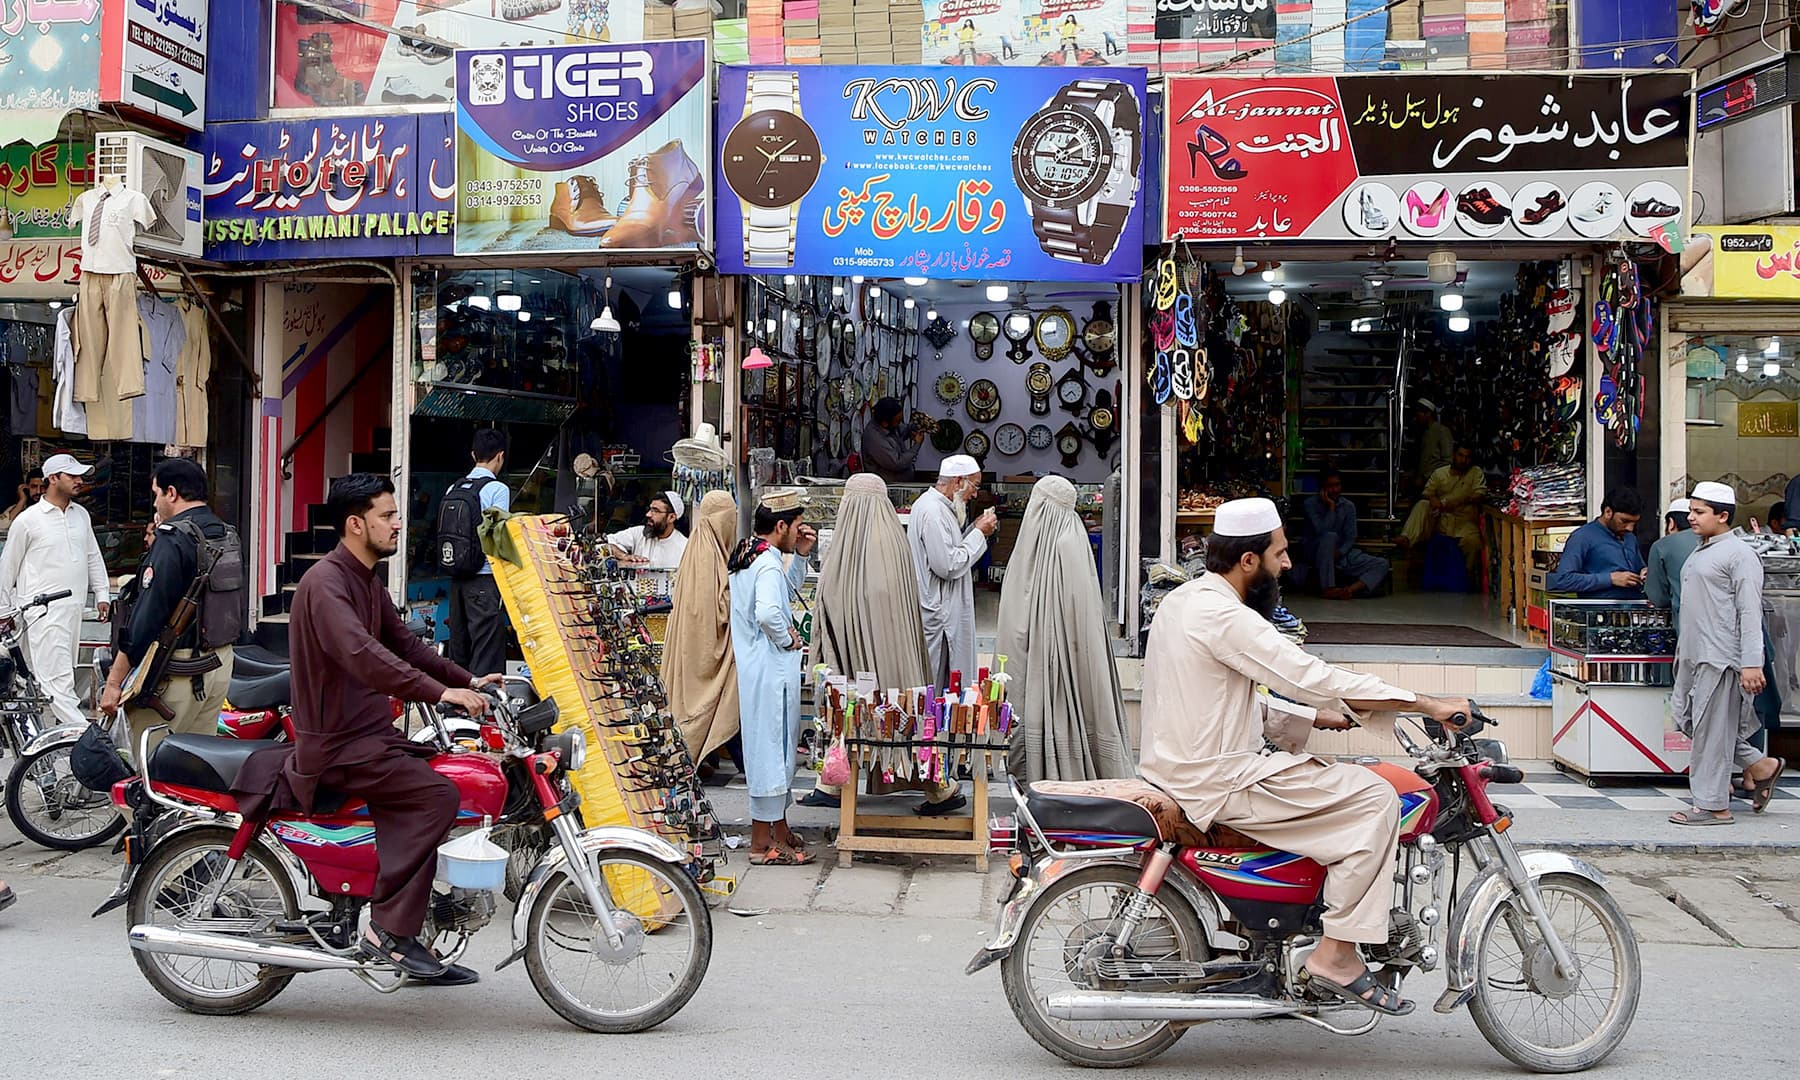 Afghan refugees are pictured on September 29, 2018 in the historic Qissa Khawani bazaar in Peshawar. —AFP